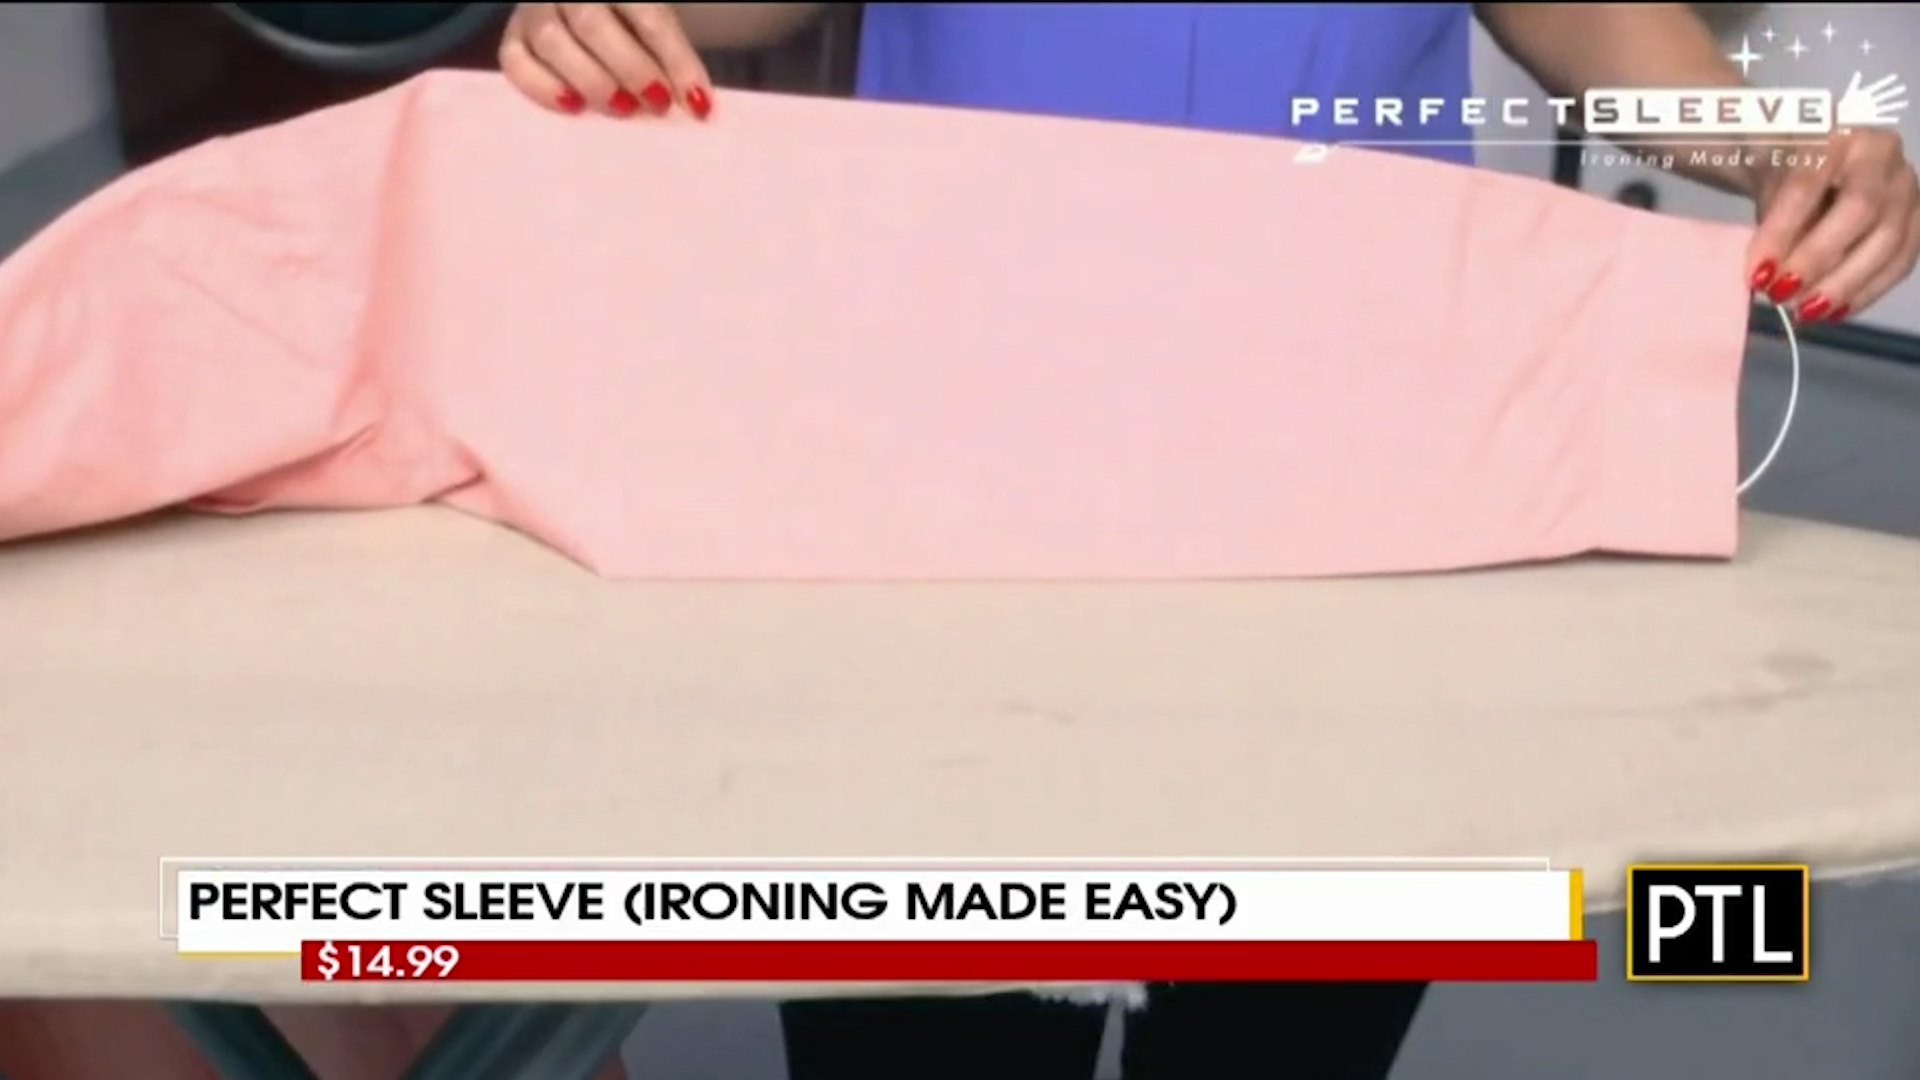 PERFECT SLEEVE (IRONING MADE EASY) - $14.99Shop Now